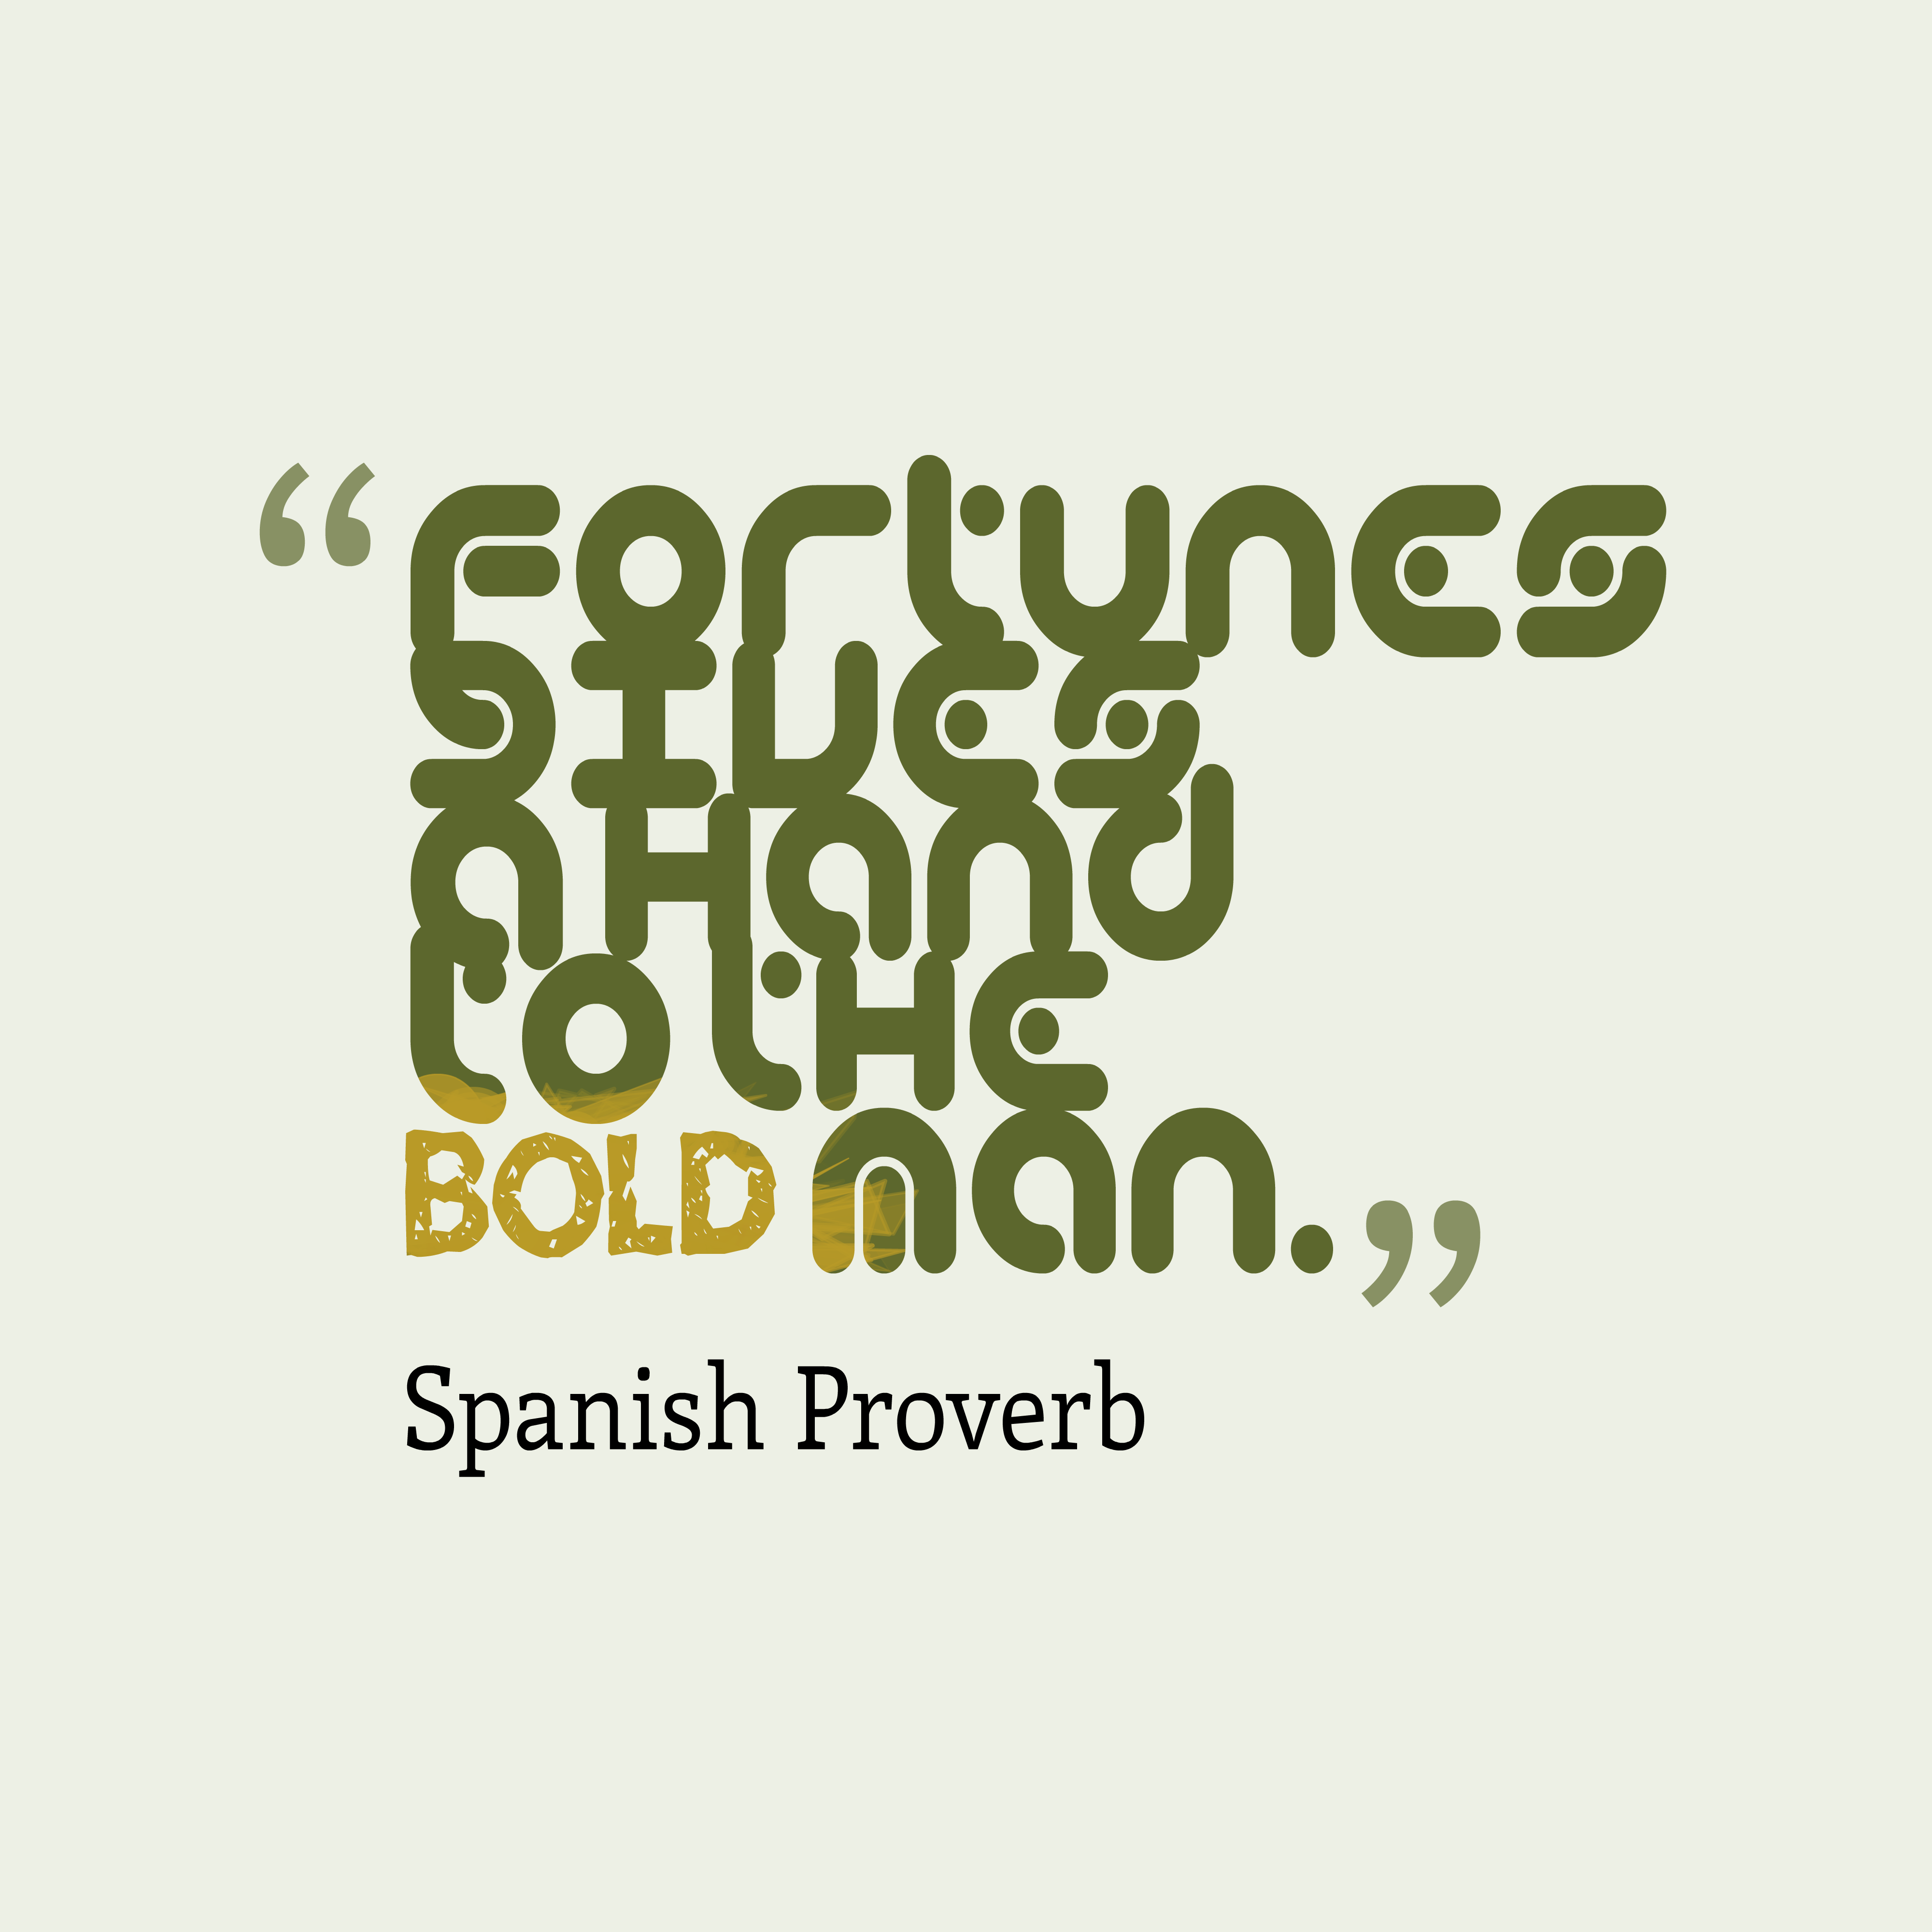 Positive Quotes In Spanish And English: 274 Best Success Quotes Images